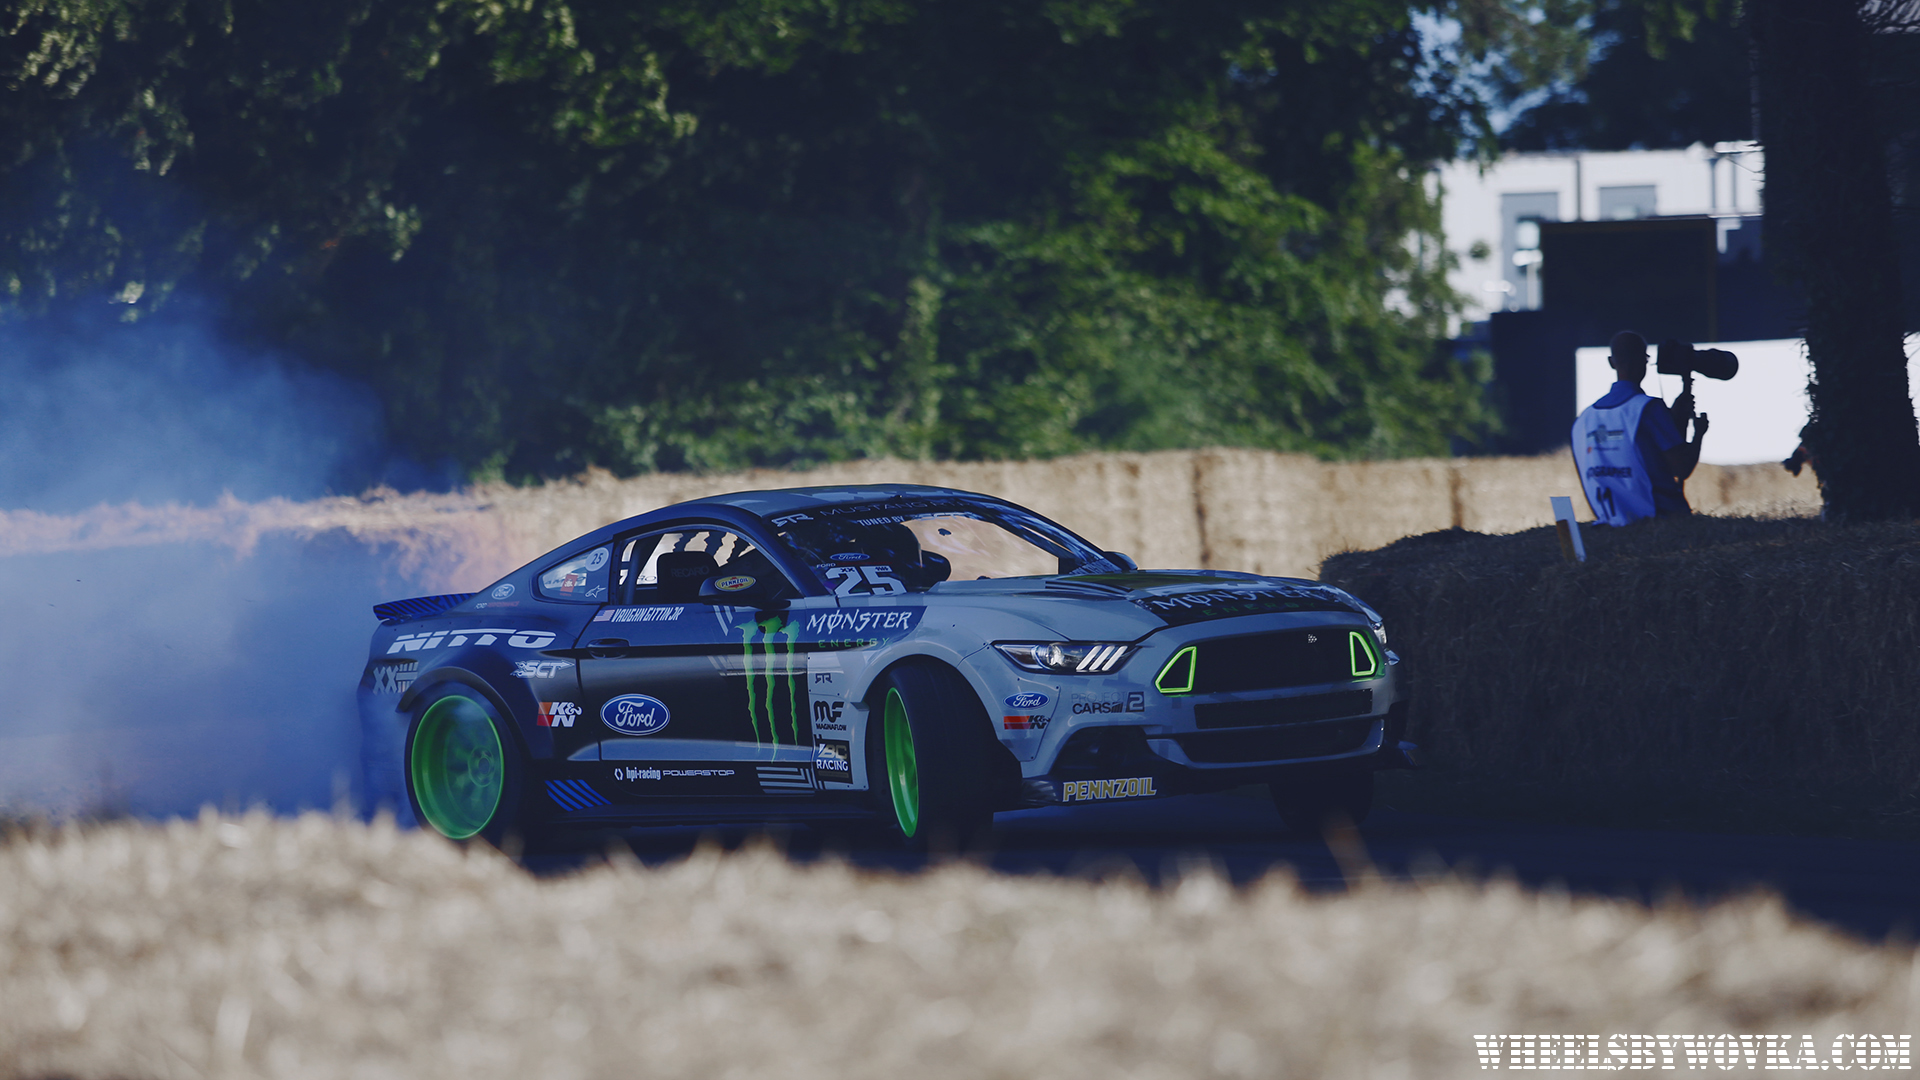 drifting-at-goodwood-festival-of-speed-by-wheelsbywovka-17